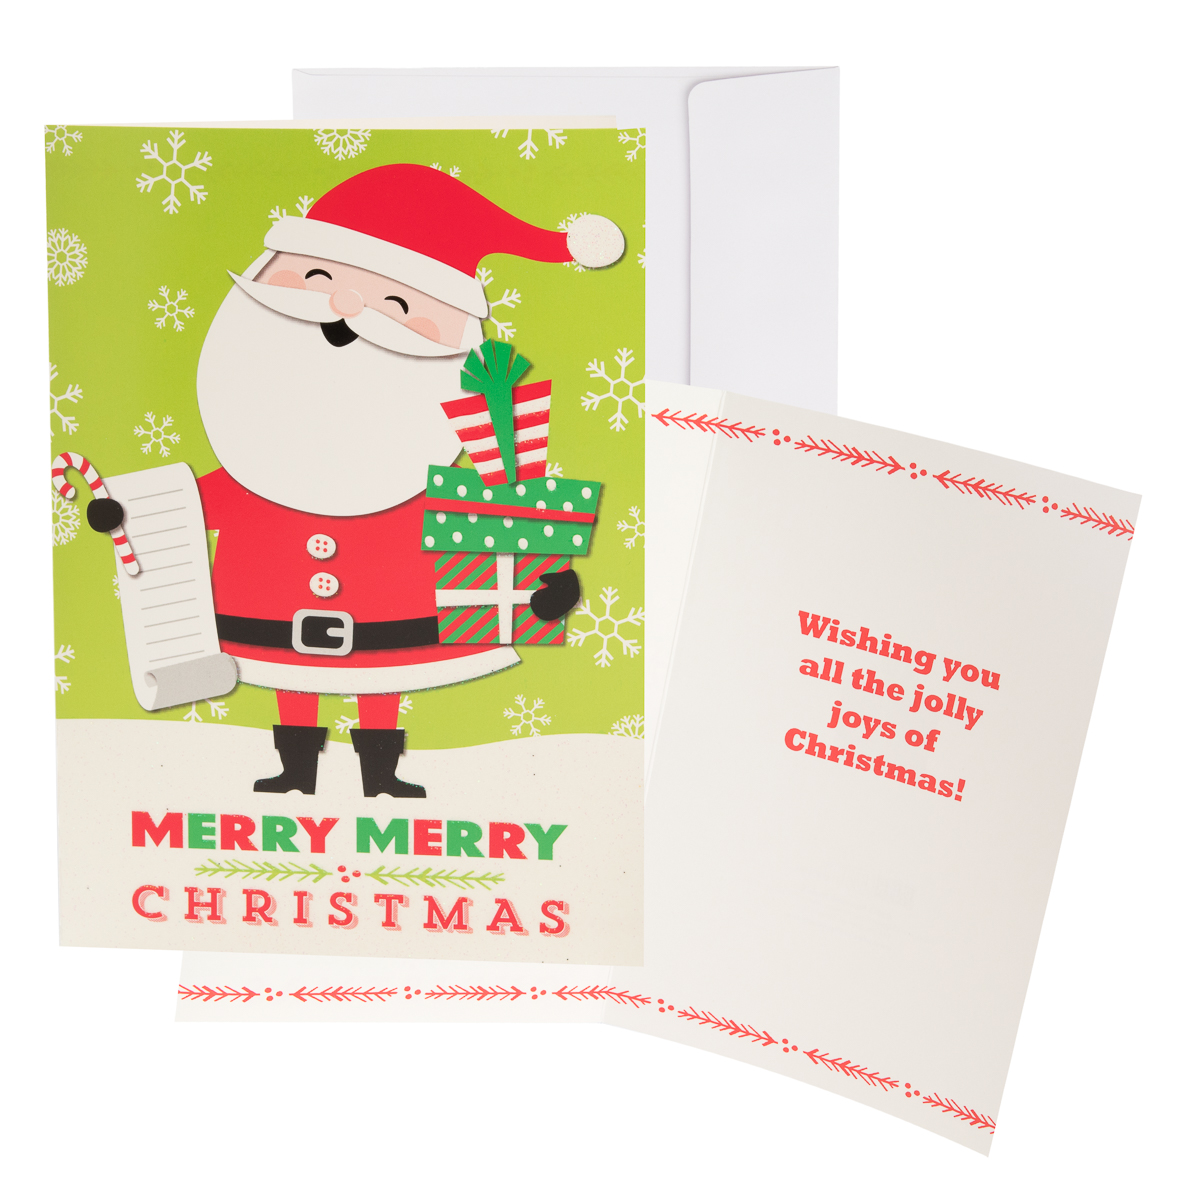 48pk-Merry-Christmas-Cards-Bulk-Assortment-Holiday-Card-Pack-with-Foil-amp-Glitter thumbnail 14